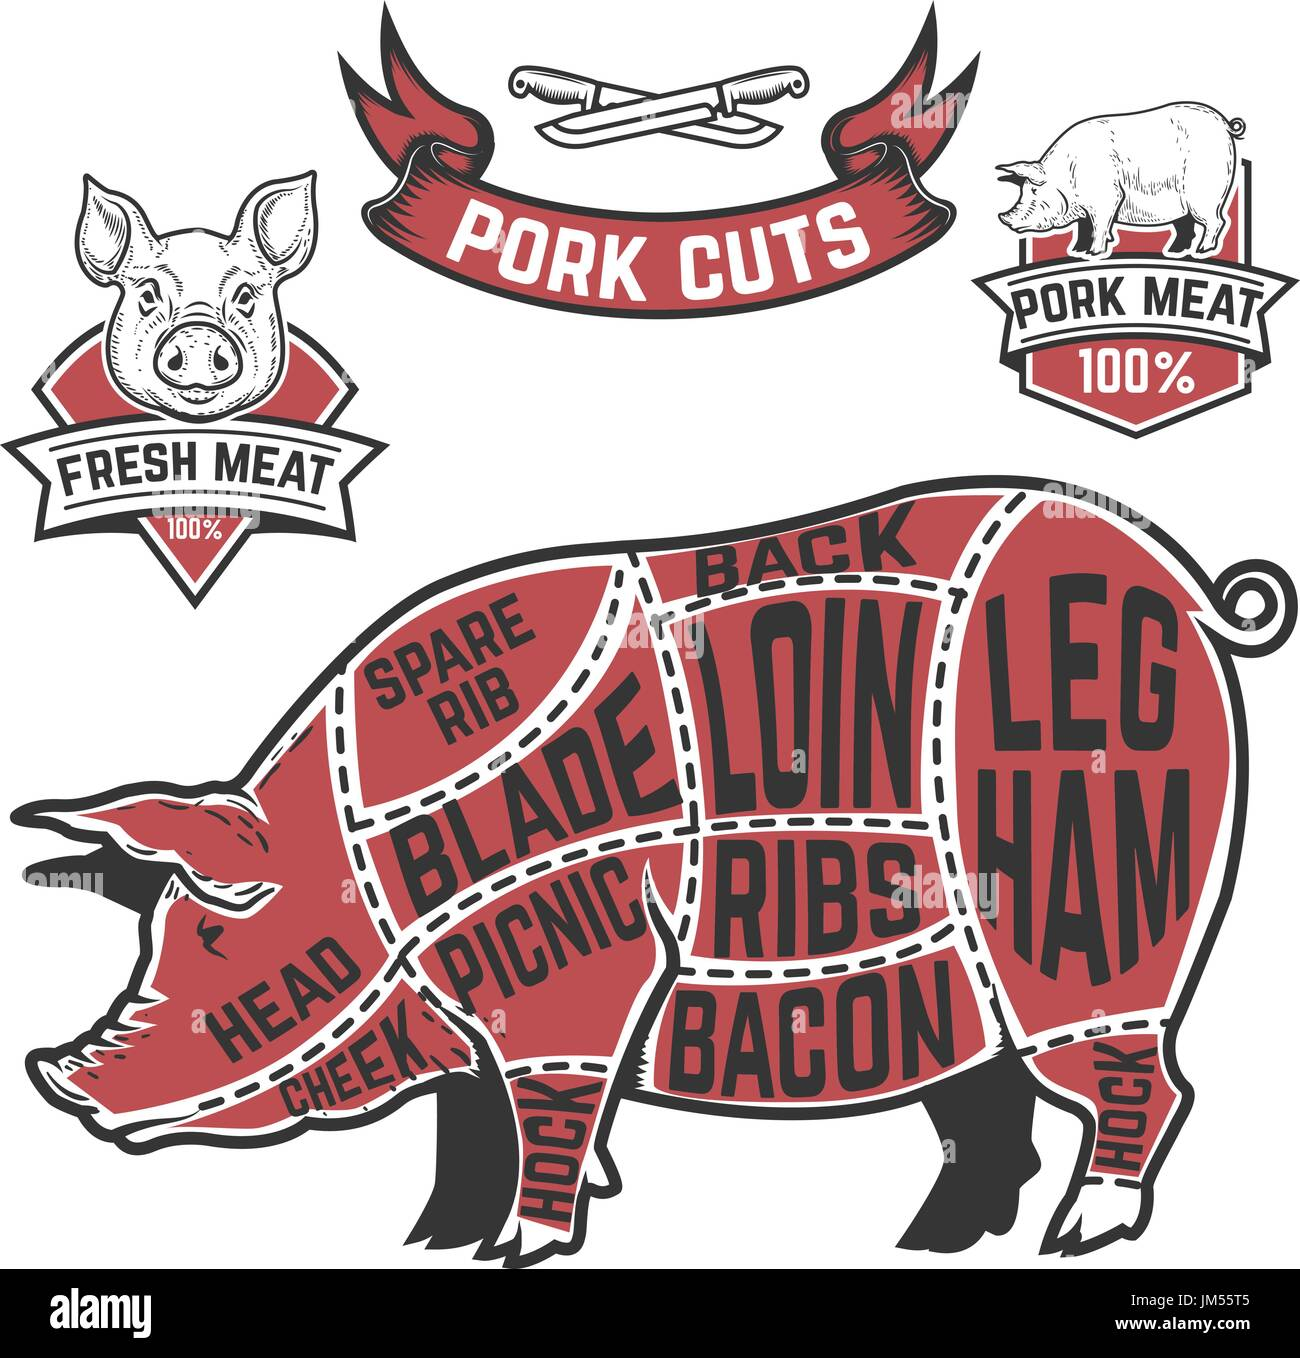 hight resolution of pork cuts butcher diagram cow illustrations on white background design elements for poster